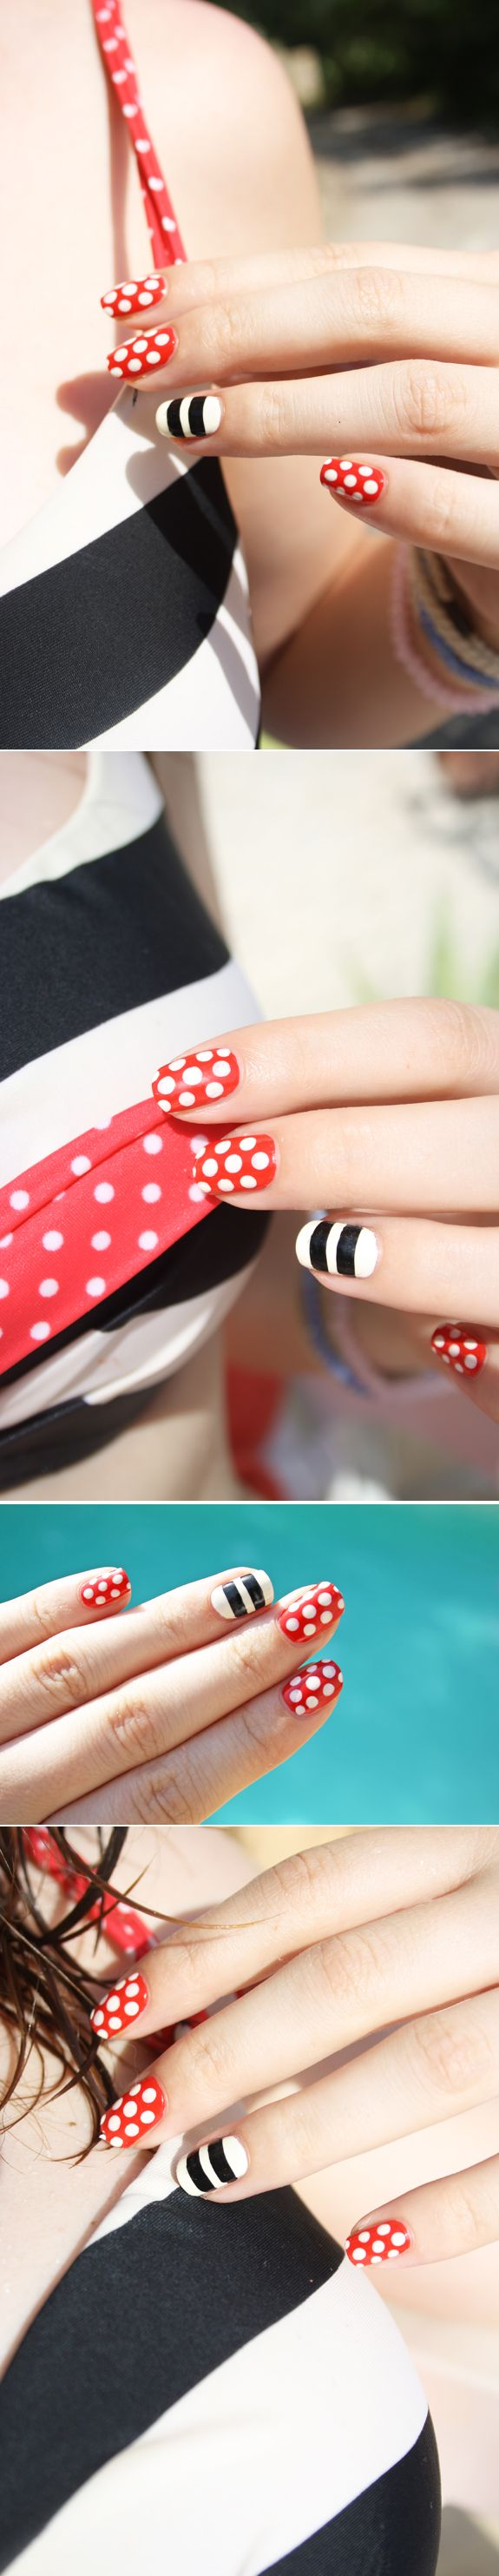 42 best Nail Art images on Pinterest | Nail scissors, Spiderman and ...